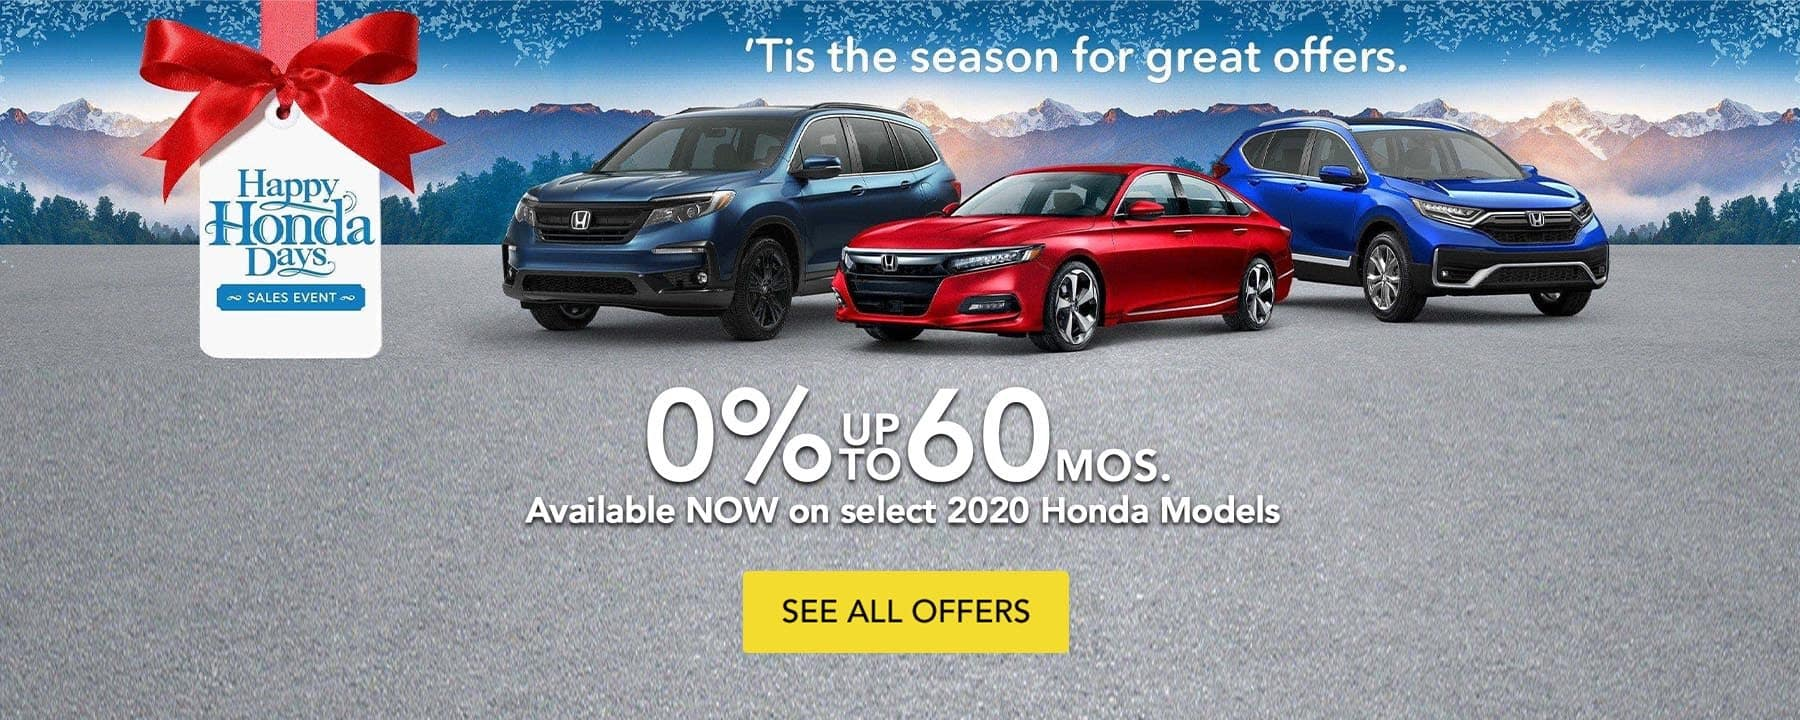 'Tis the season for great offers! Happy Honda Days. Ask About our 0 percent up to 60 months on select 2020 Honda models.